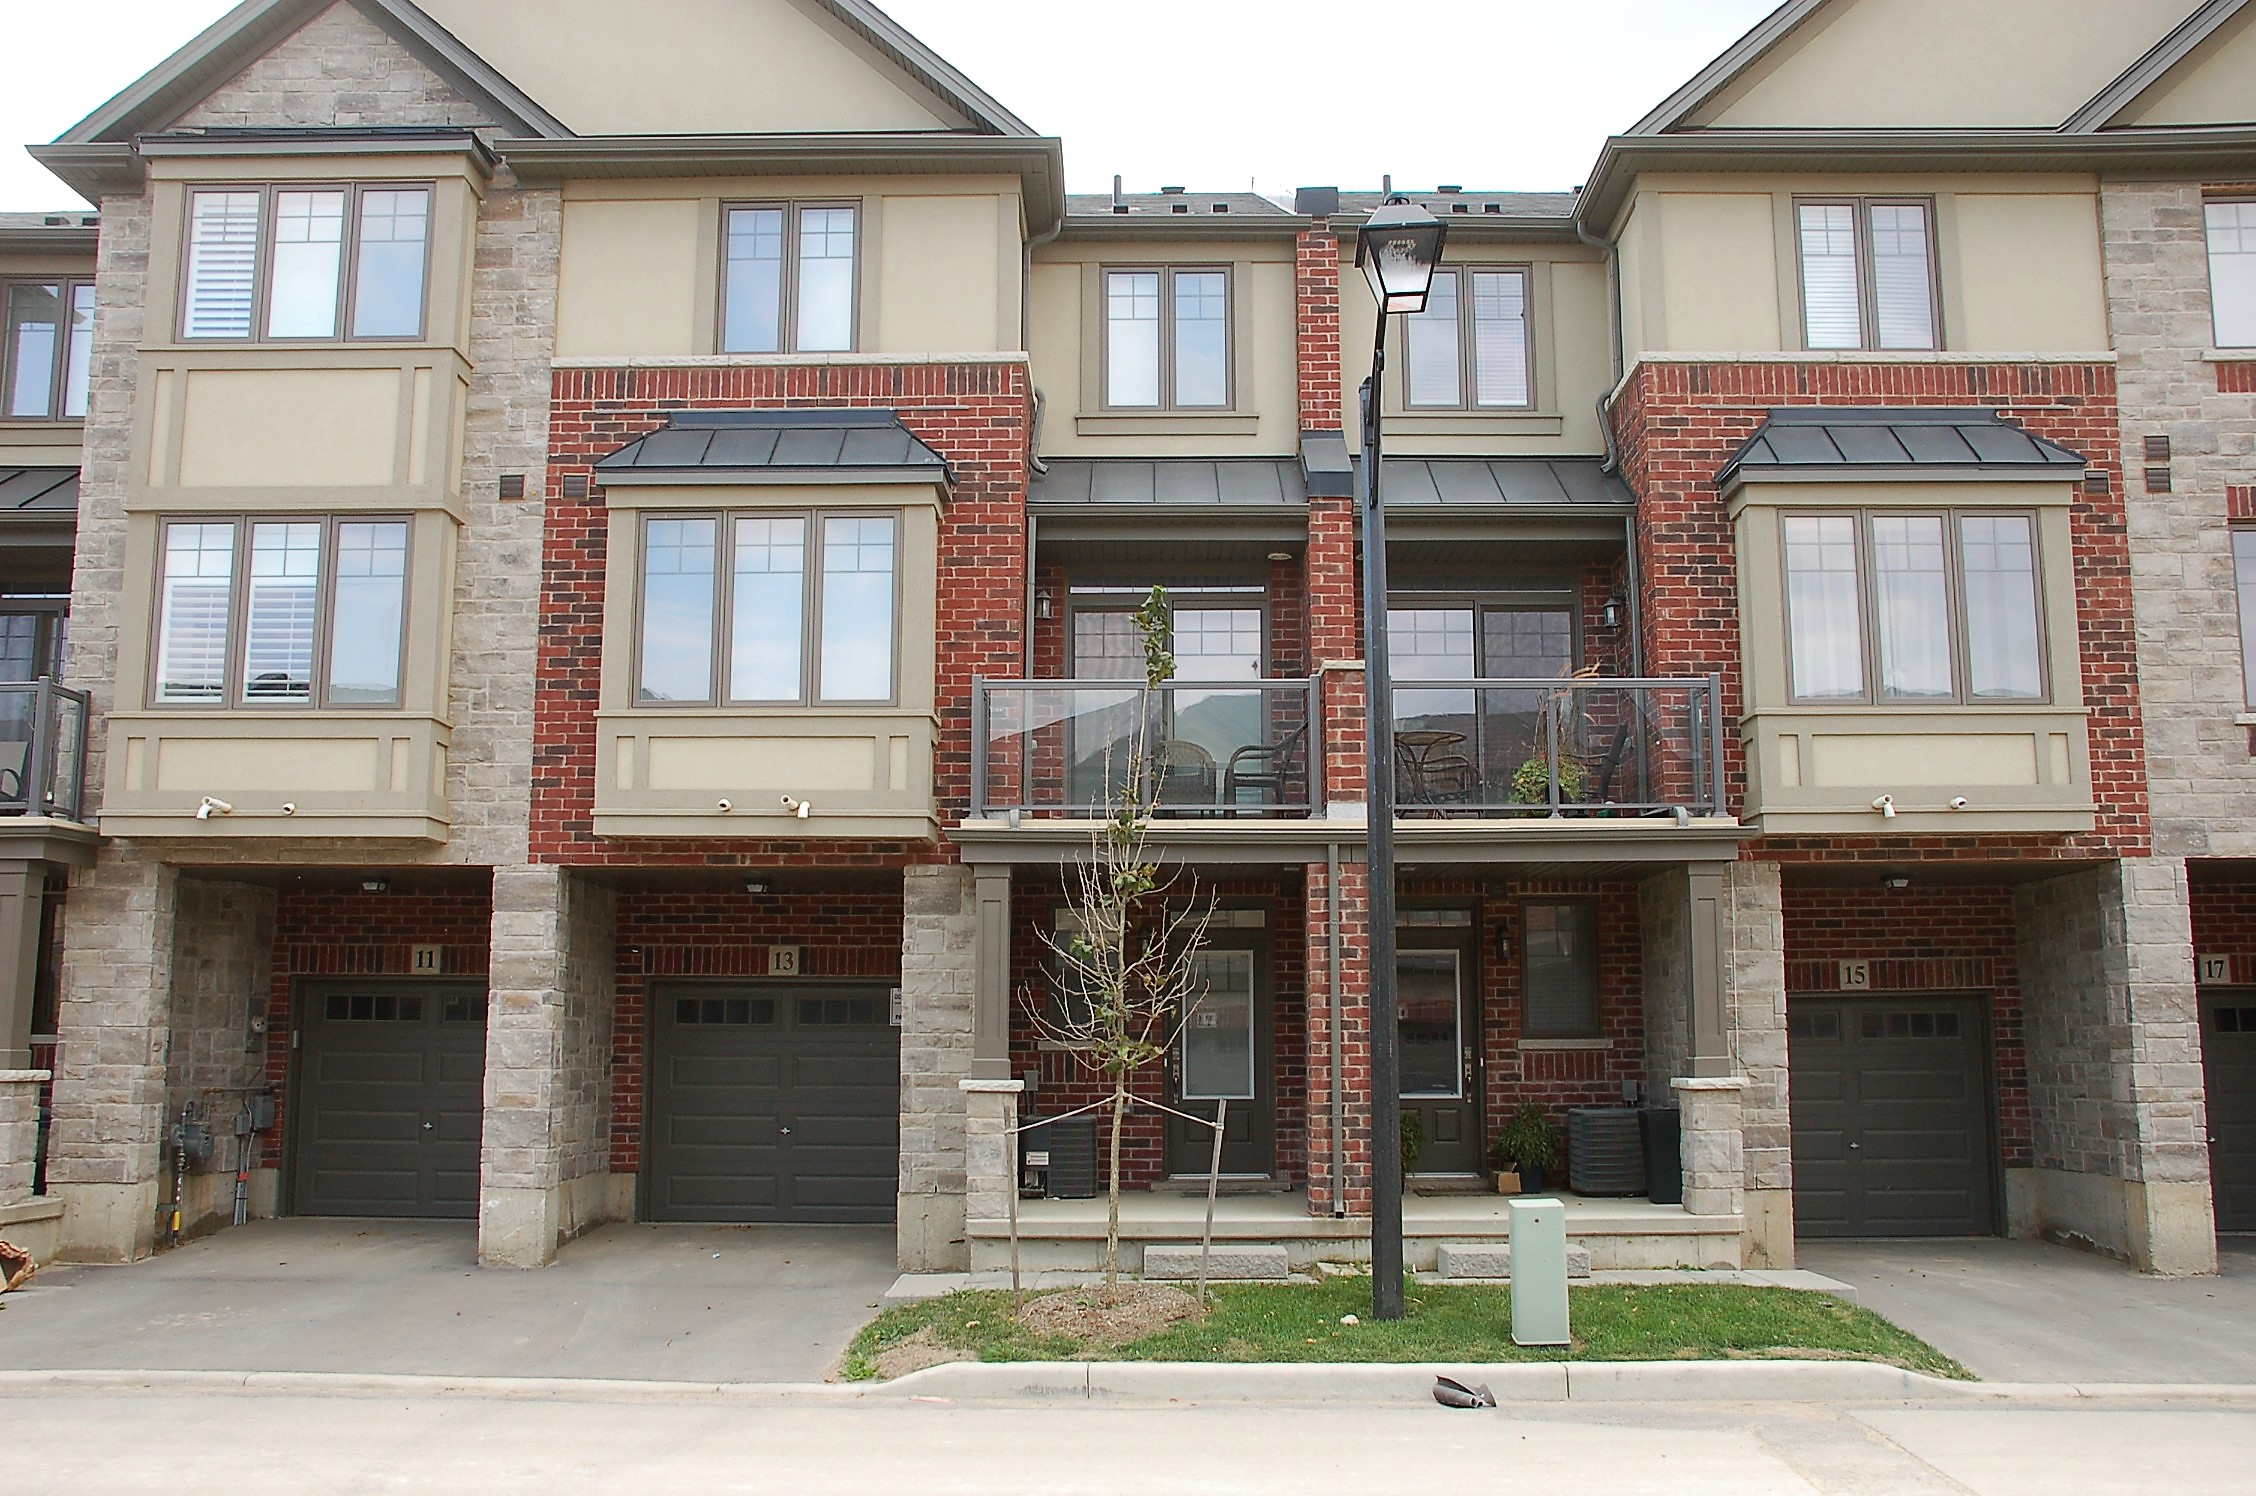 Photo of: MLS# H4037766 13 FARLEY Lane, Ancaster |ListingID=13986